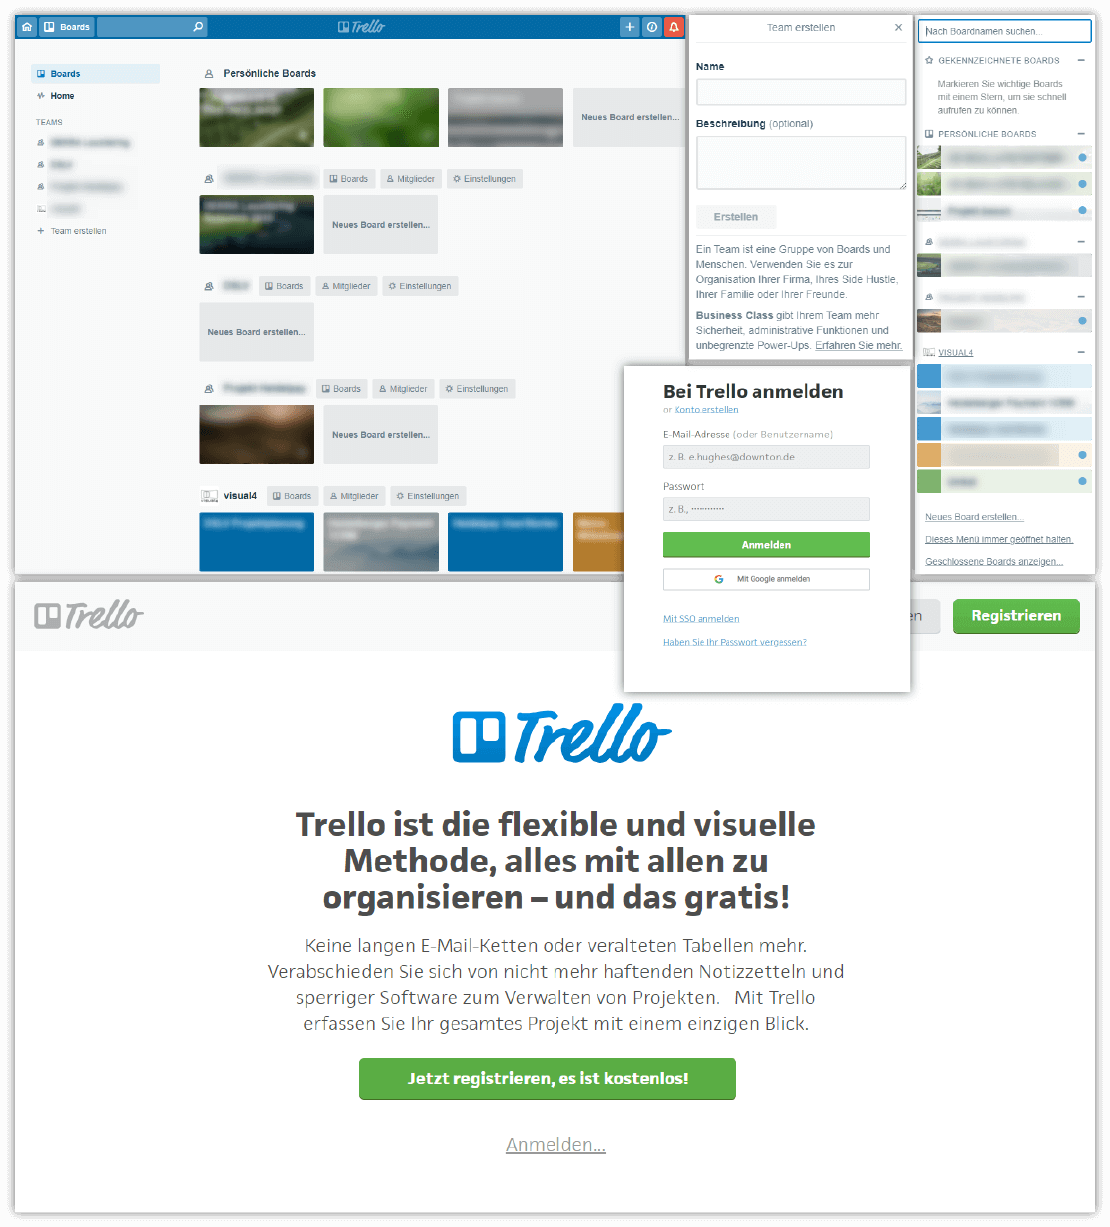 Kollaborationsplattform Trello